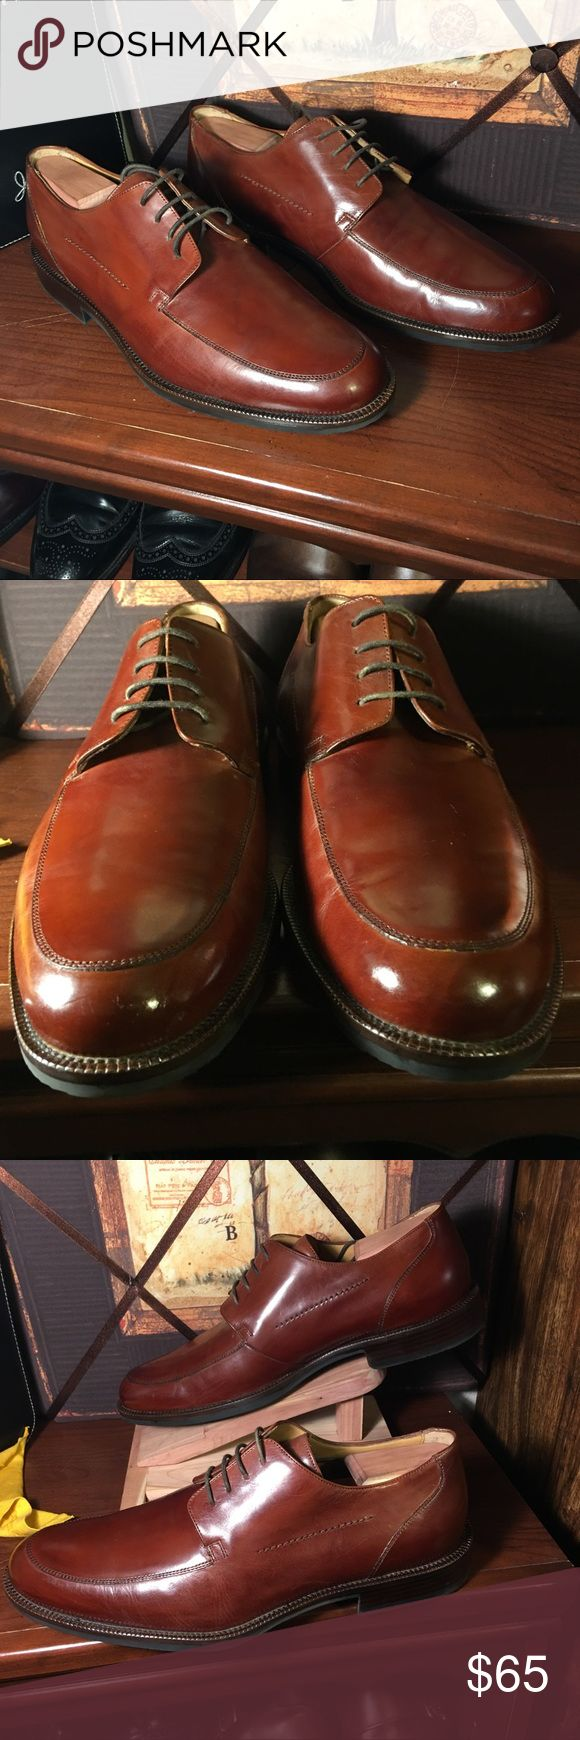 Johnston and Murphy signature series These were a floor model shoe. Never for sale, the leather is in great condition, leather seems to be a creased and cracked around the toe.  Please always ask if you need to. Johnston & Murphy Shoes Oxfords & Derbys